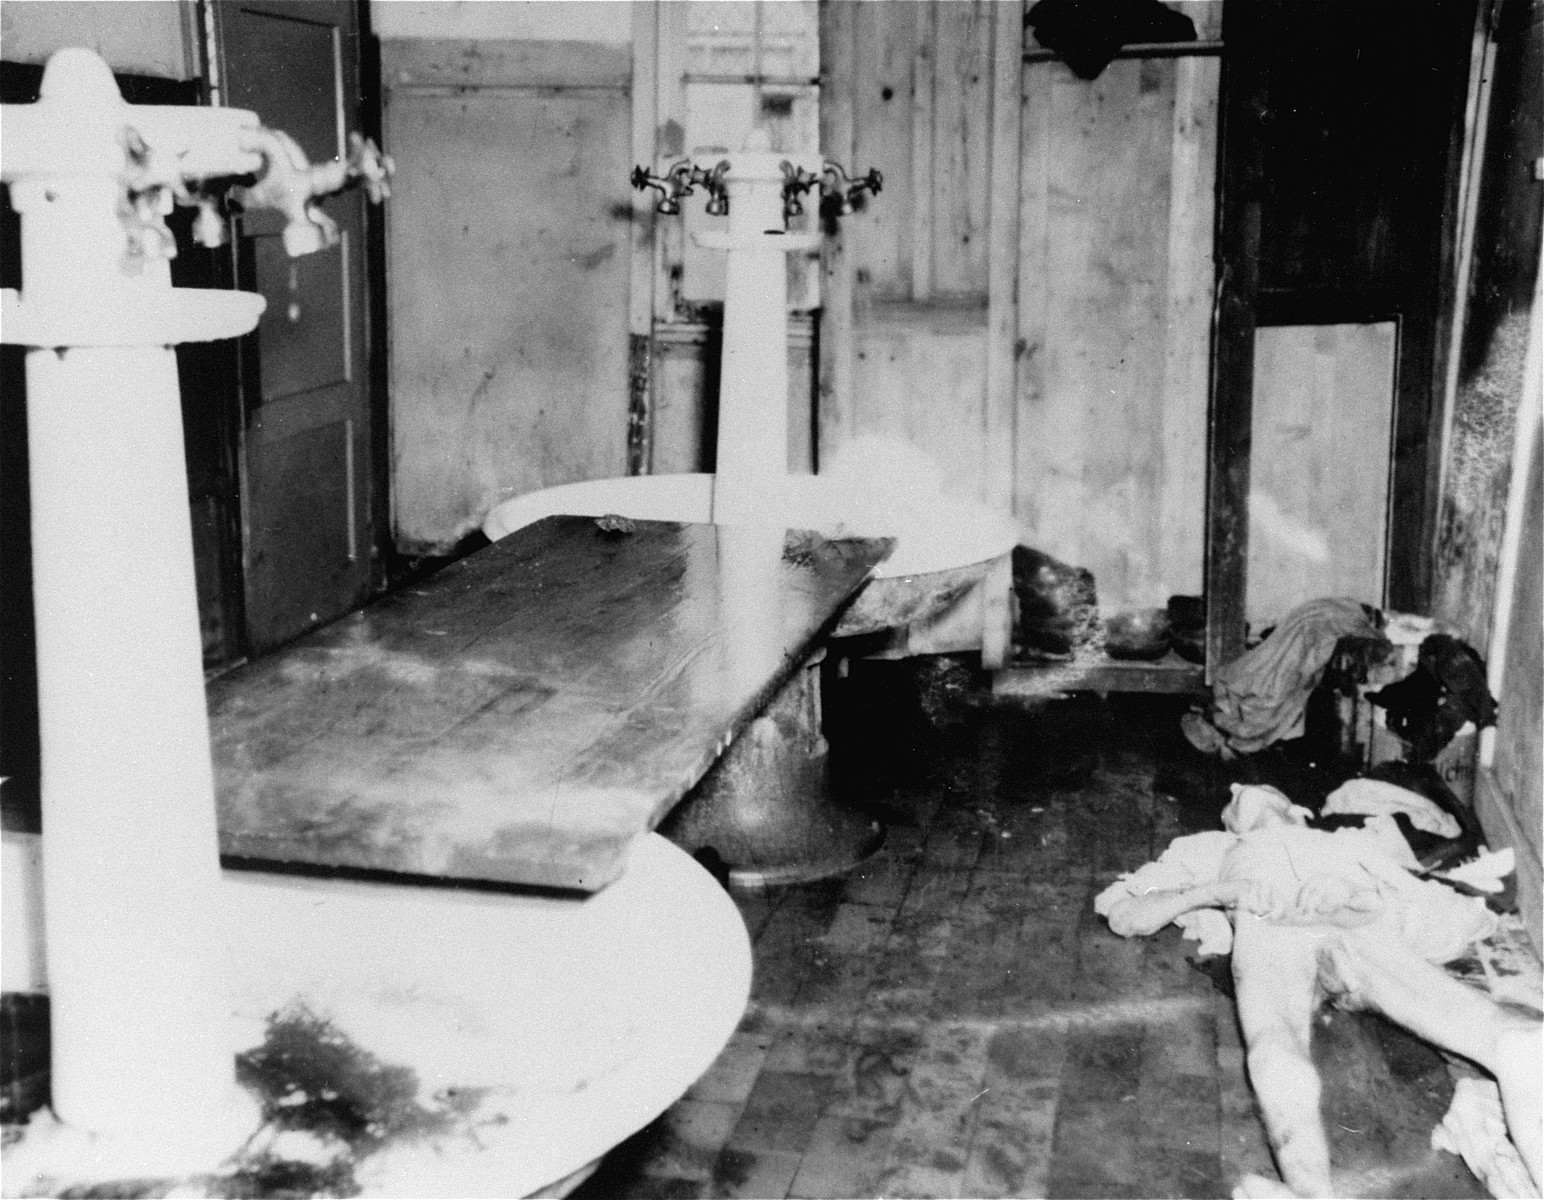 A corpse in the washroom after liberation.